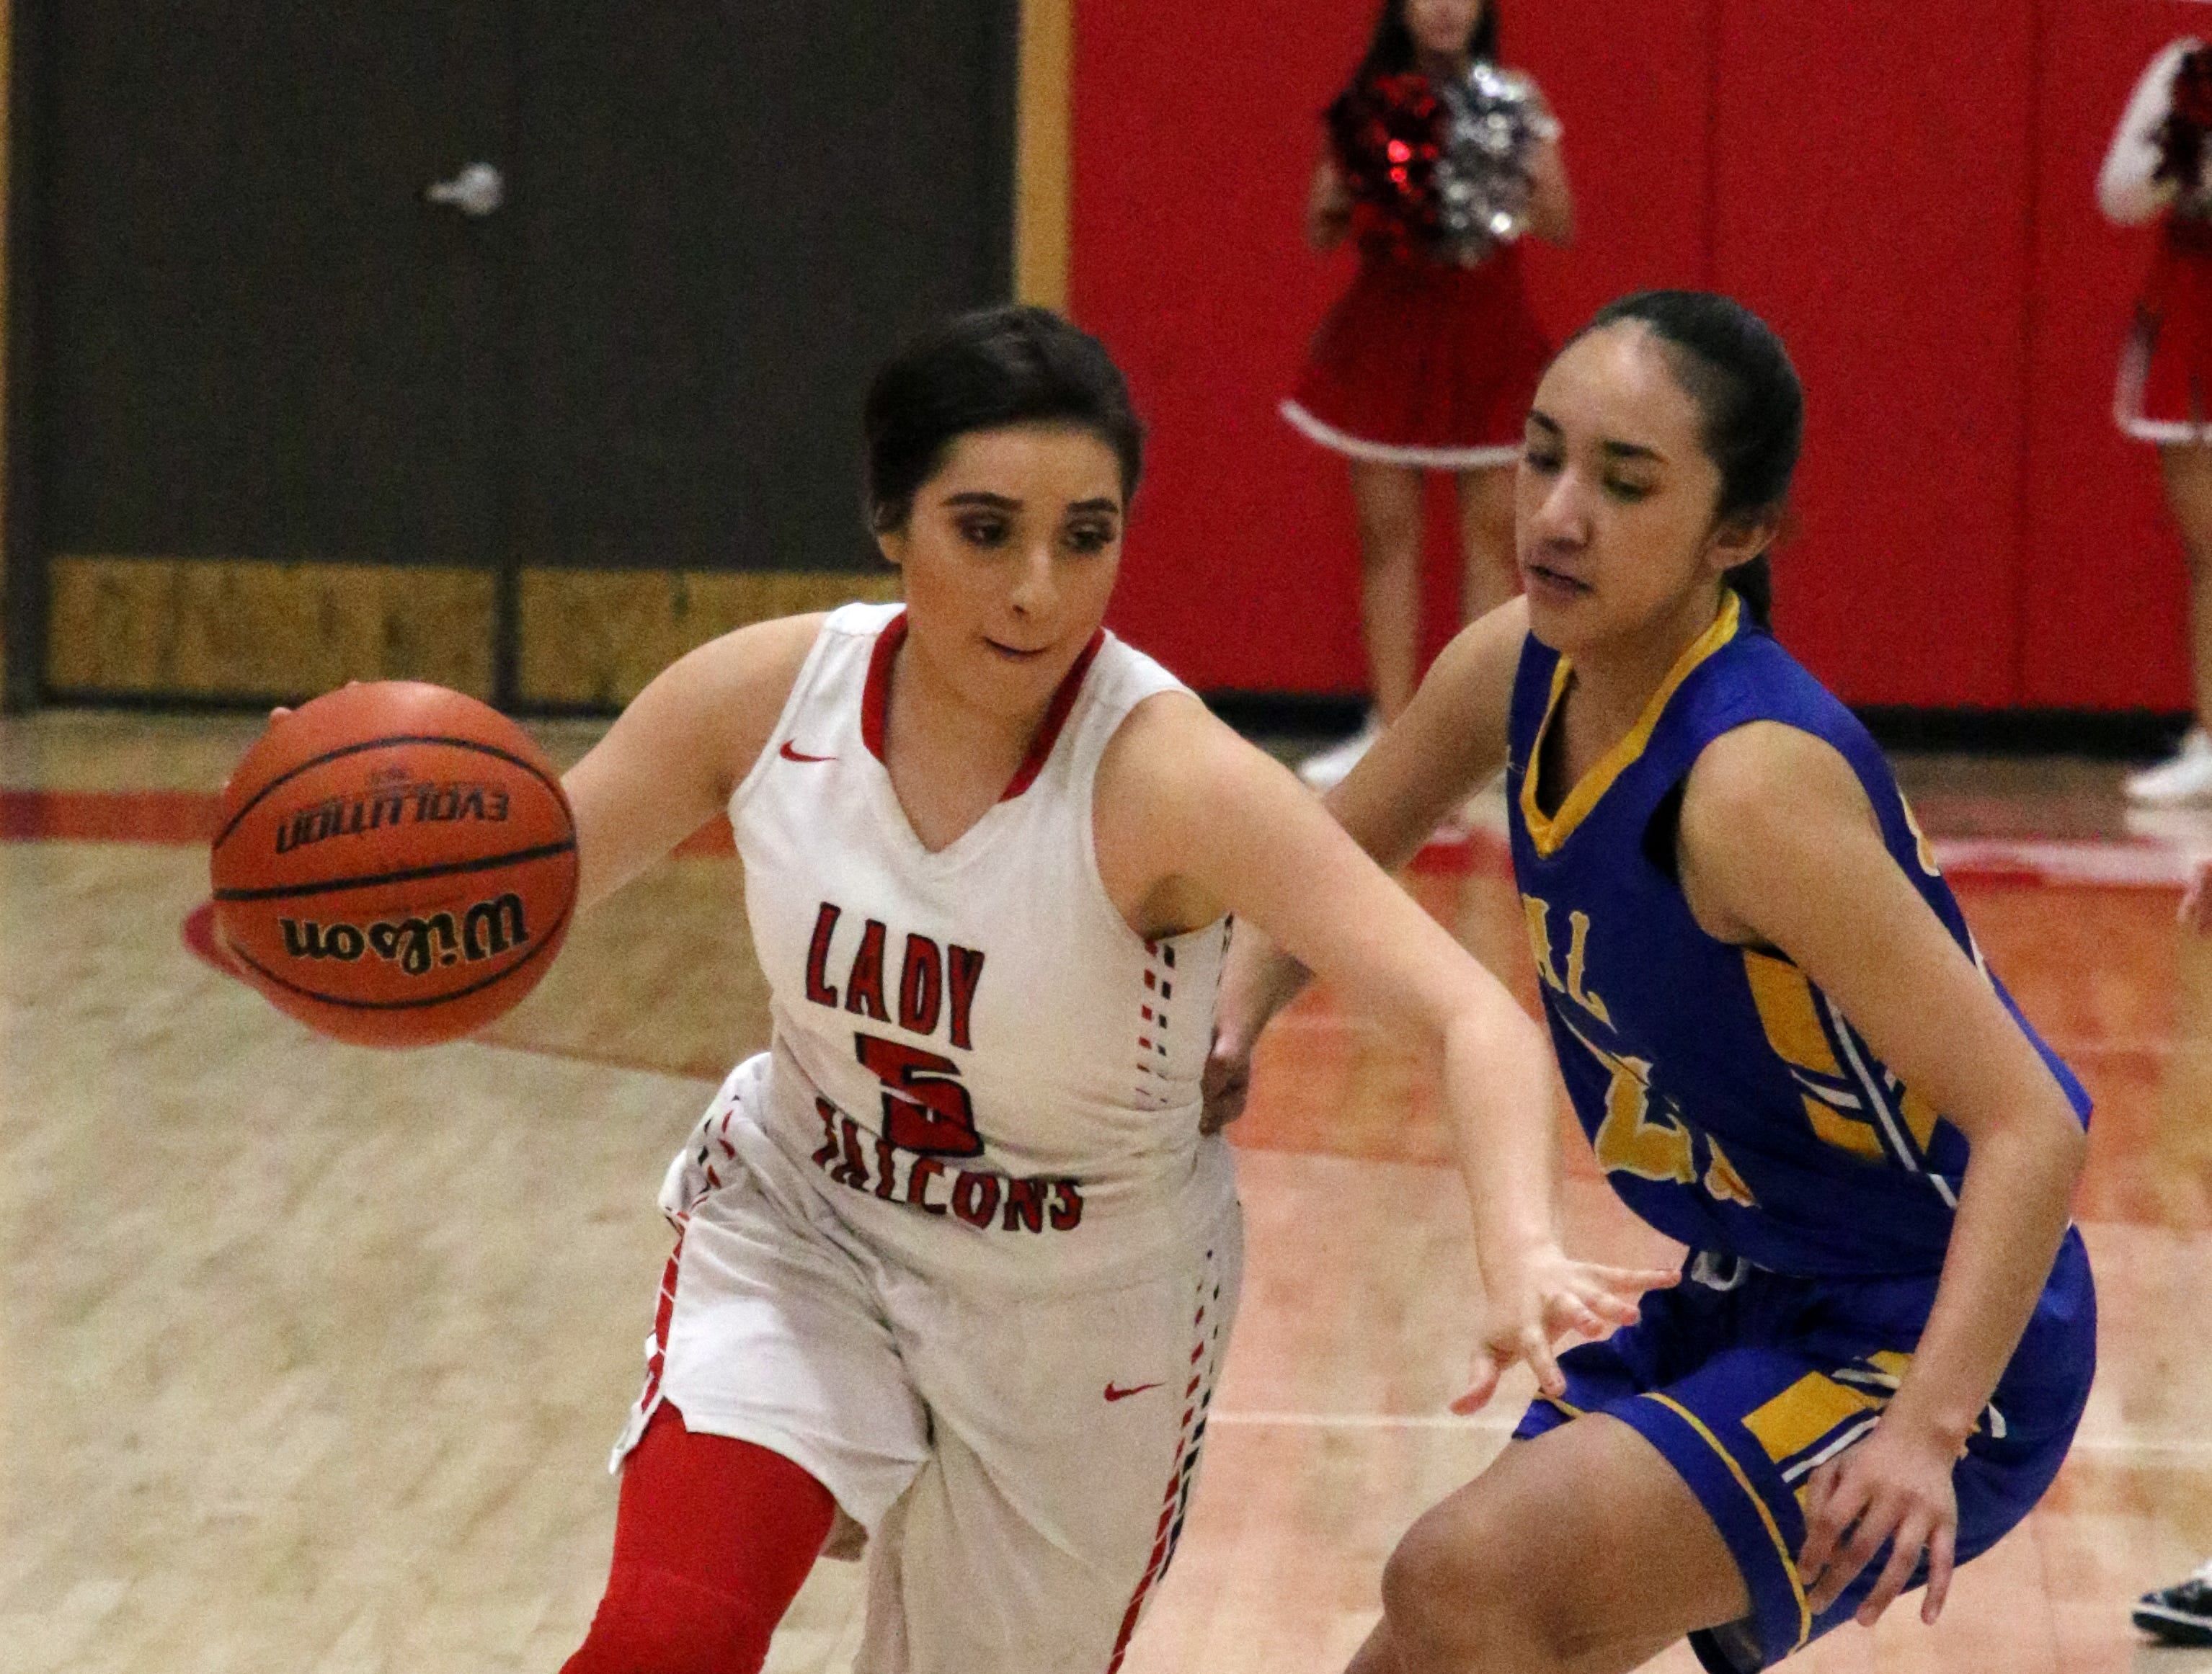 Anyssa Rodriguez drives by a Jal defender in the first quarter of Saturday's Class 4-2A district title game.